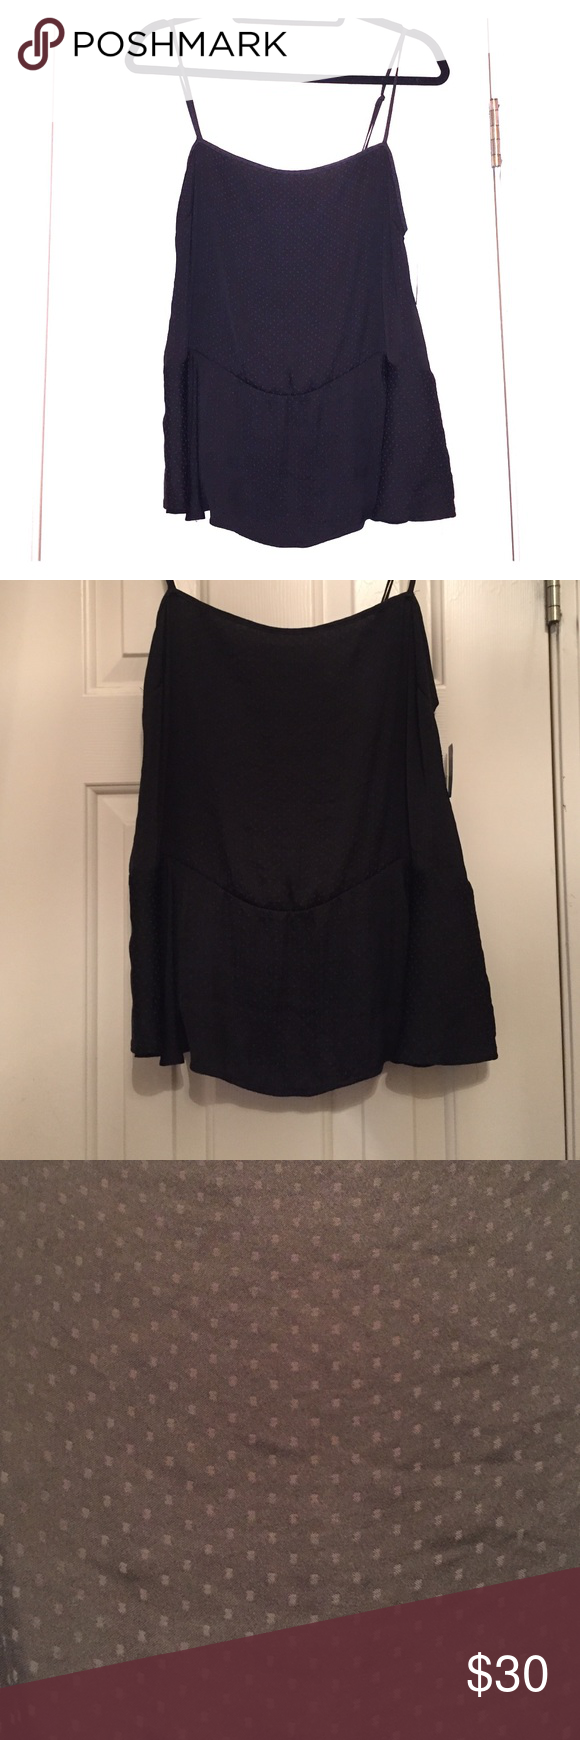 New Free People Peplum Camisole Black, new with tags! Little gray square accents in the material print as seen in one of the pictures. 100% polyester. Peplum detail at the waist. Free People Tops Camisoles